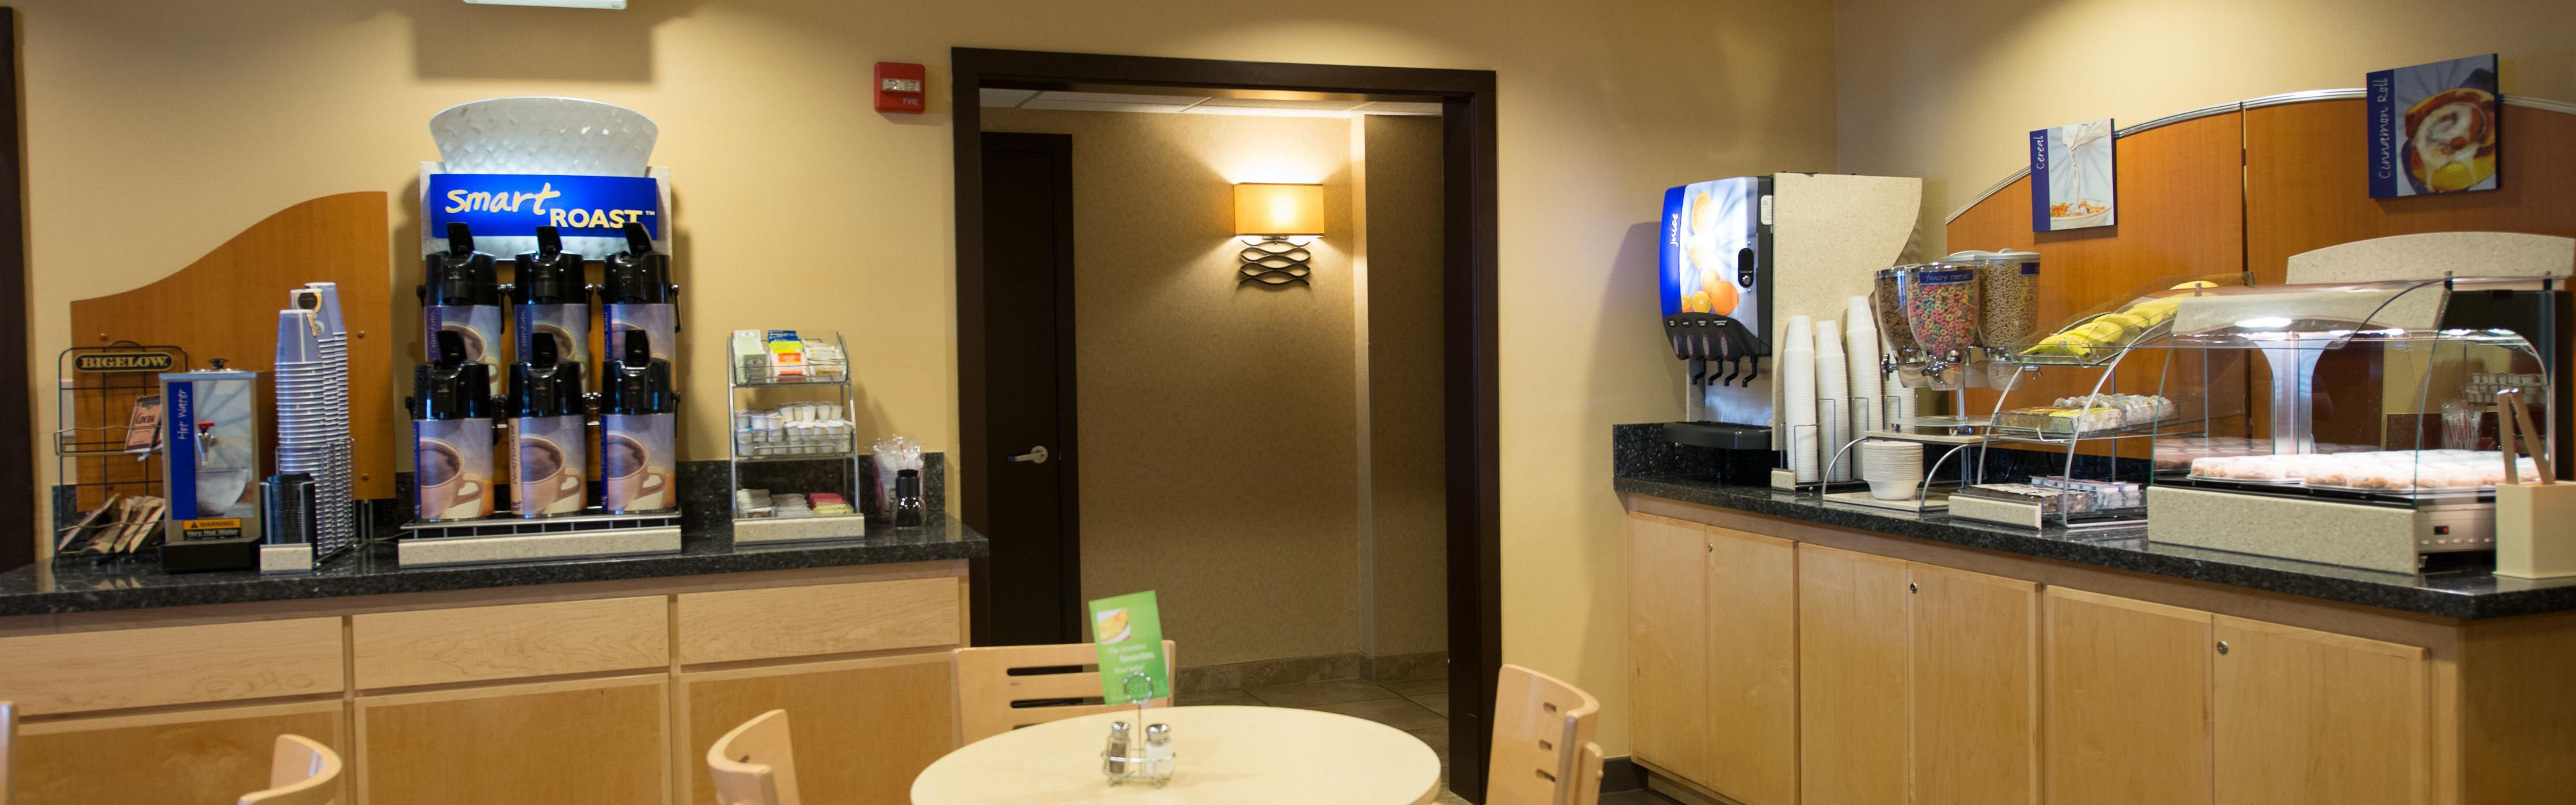 Holiday Inn Express Portland East - Troutdale image 3